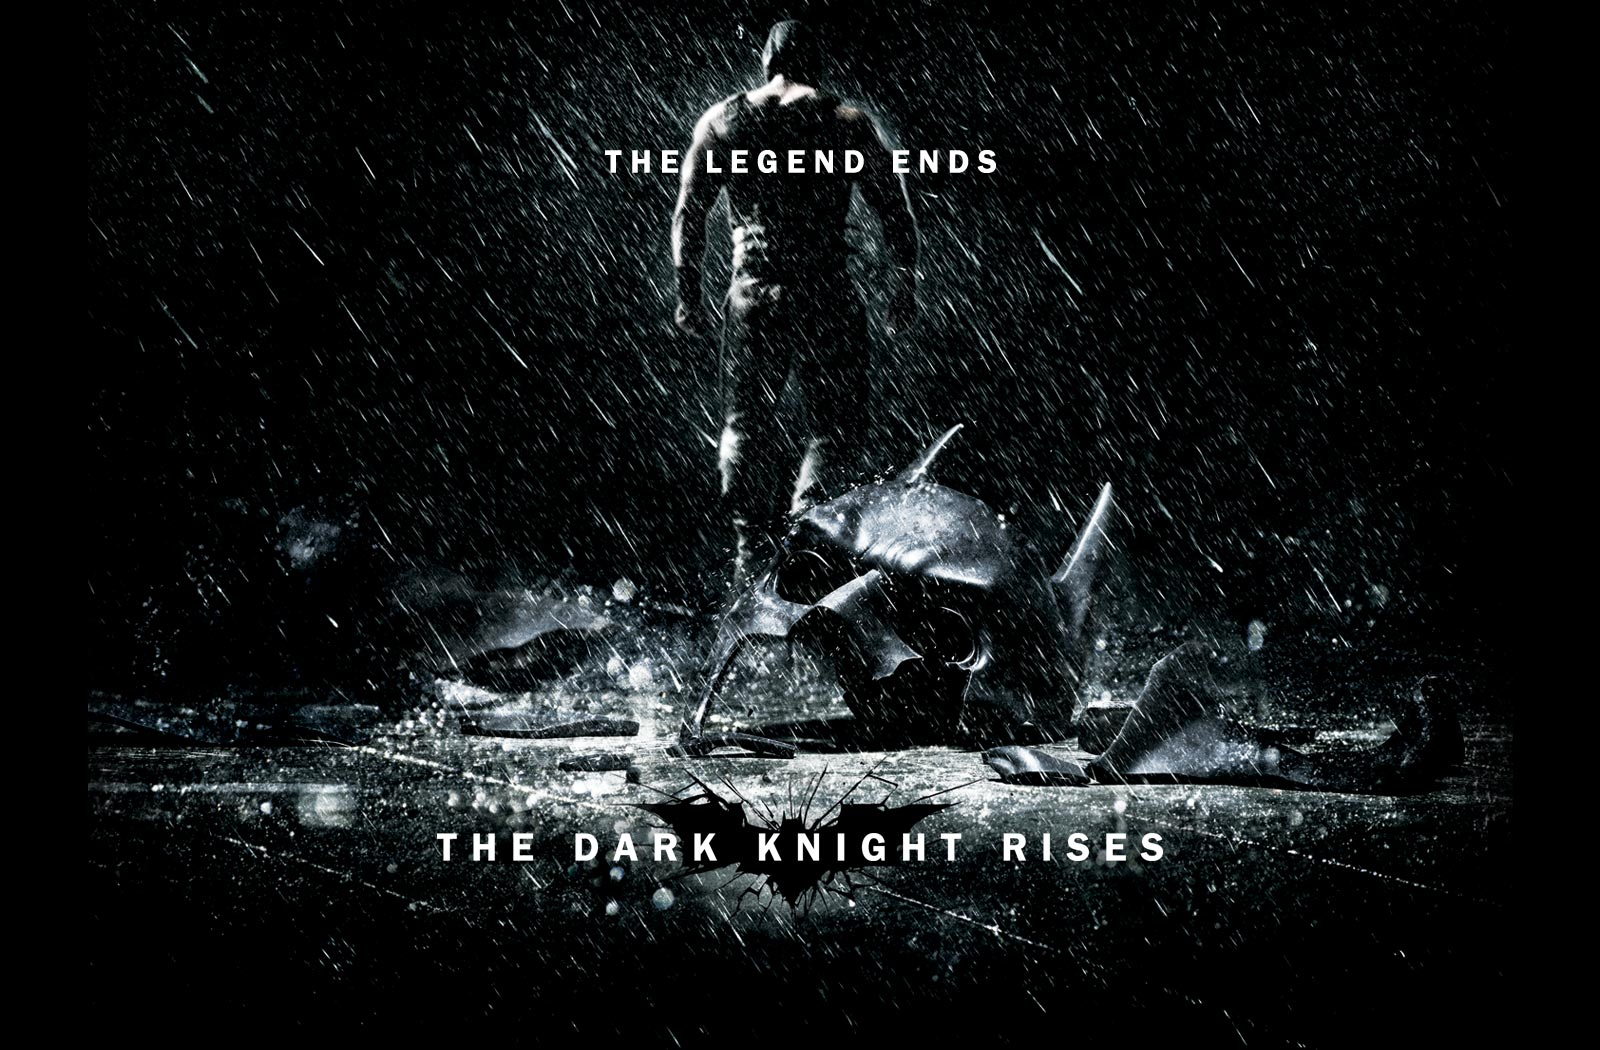 The Dark Knight Files Dark Knight Rises Wallpaper